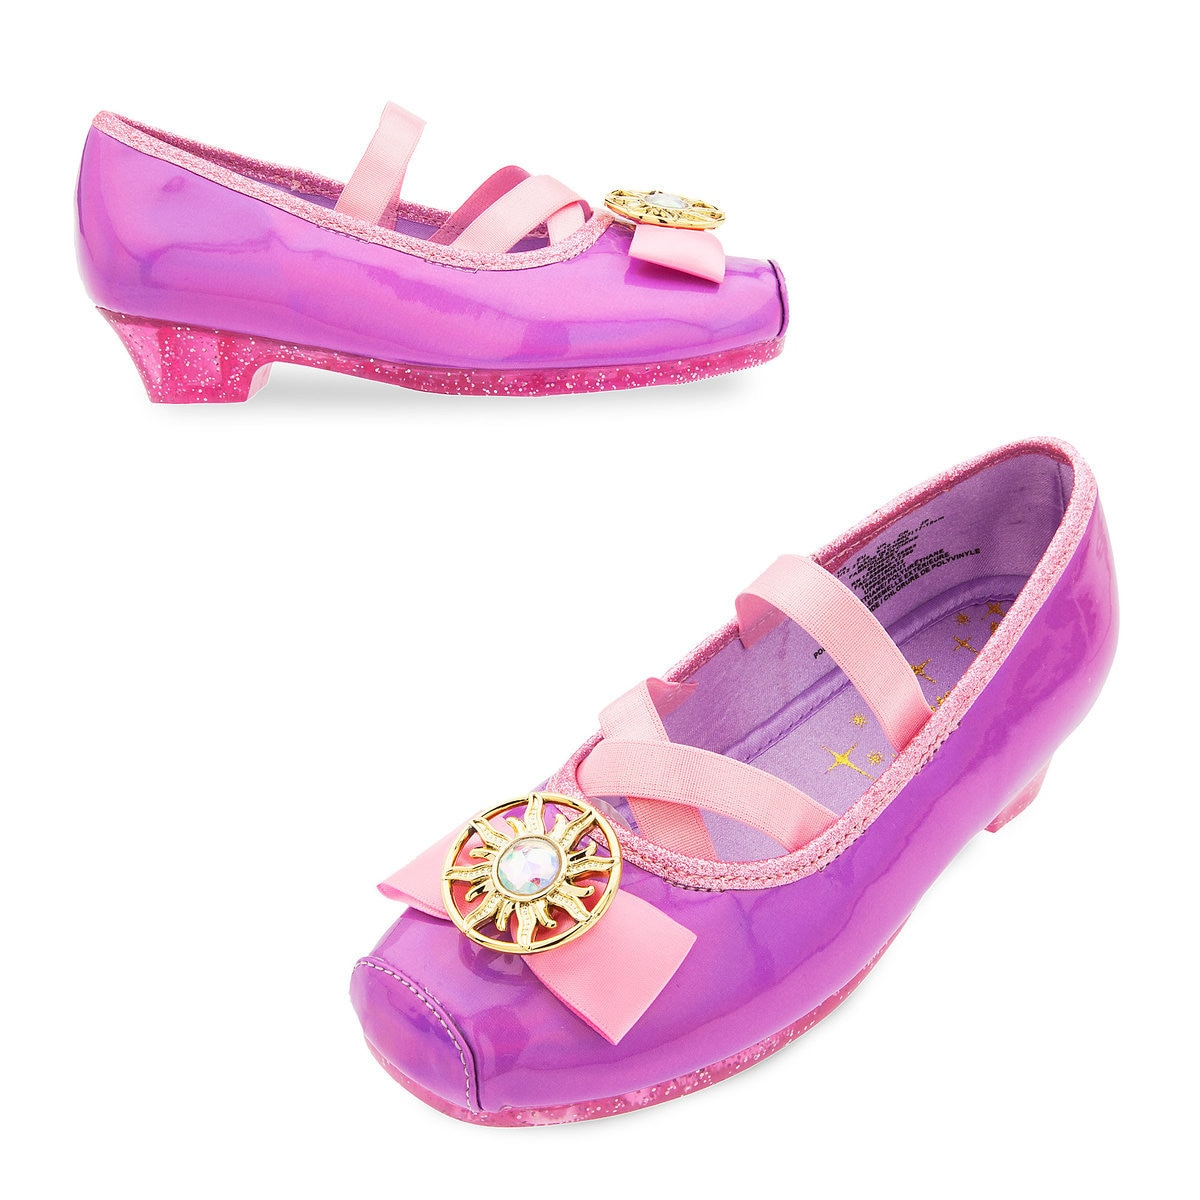 1bf727f44329 Product Image of Rapunzel Costume Shoes for Kids - Tangled   1